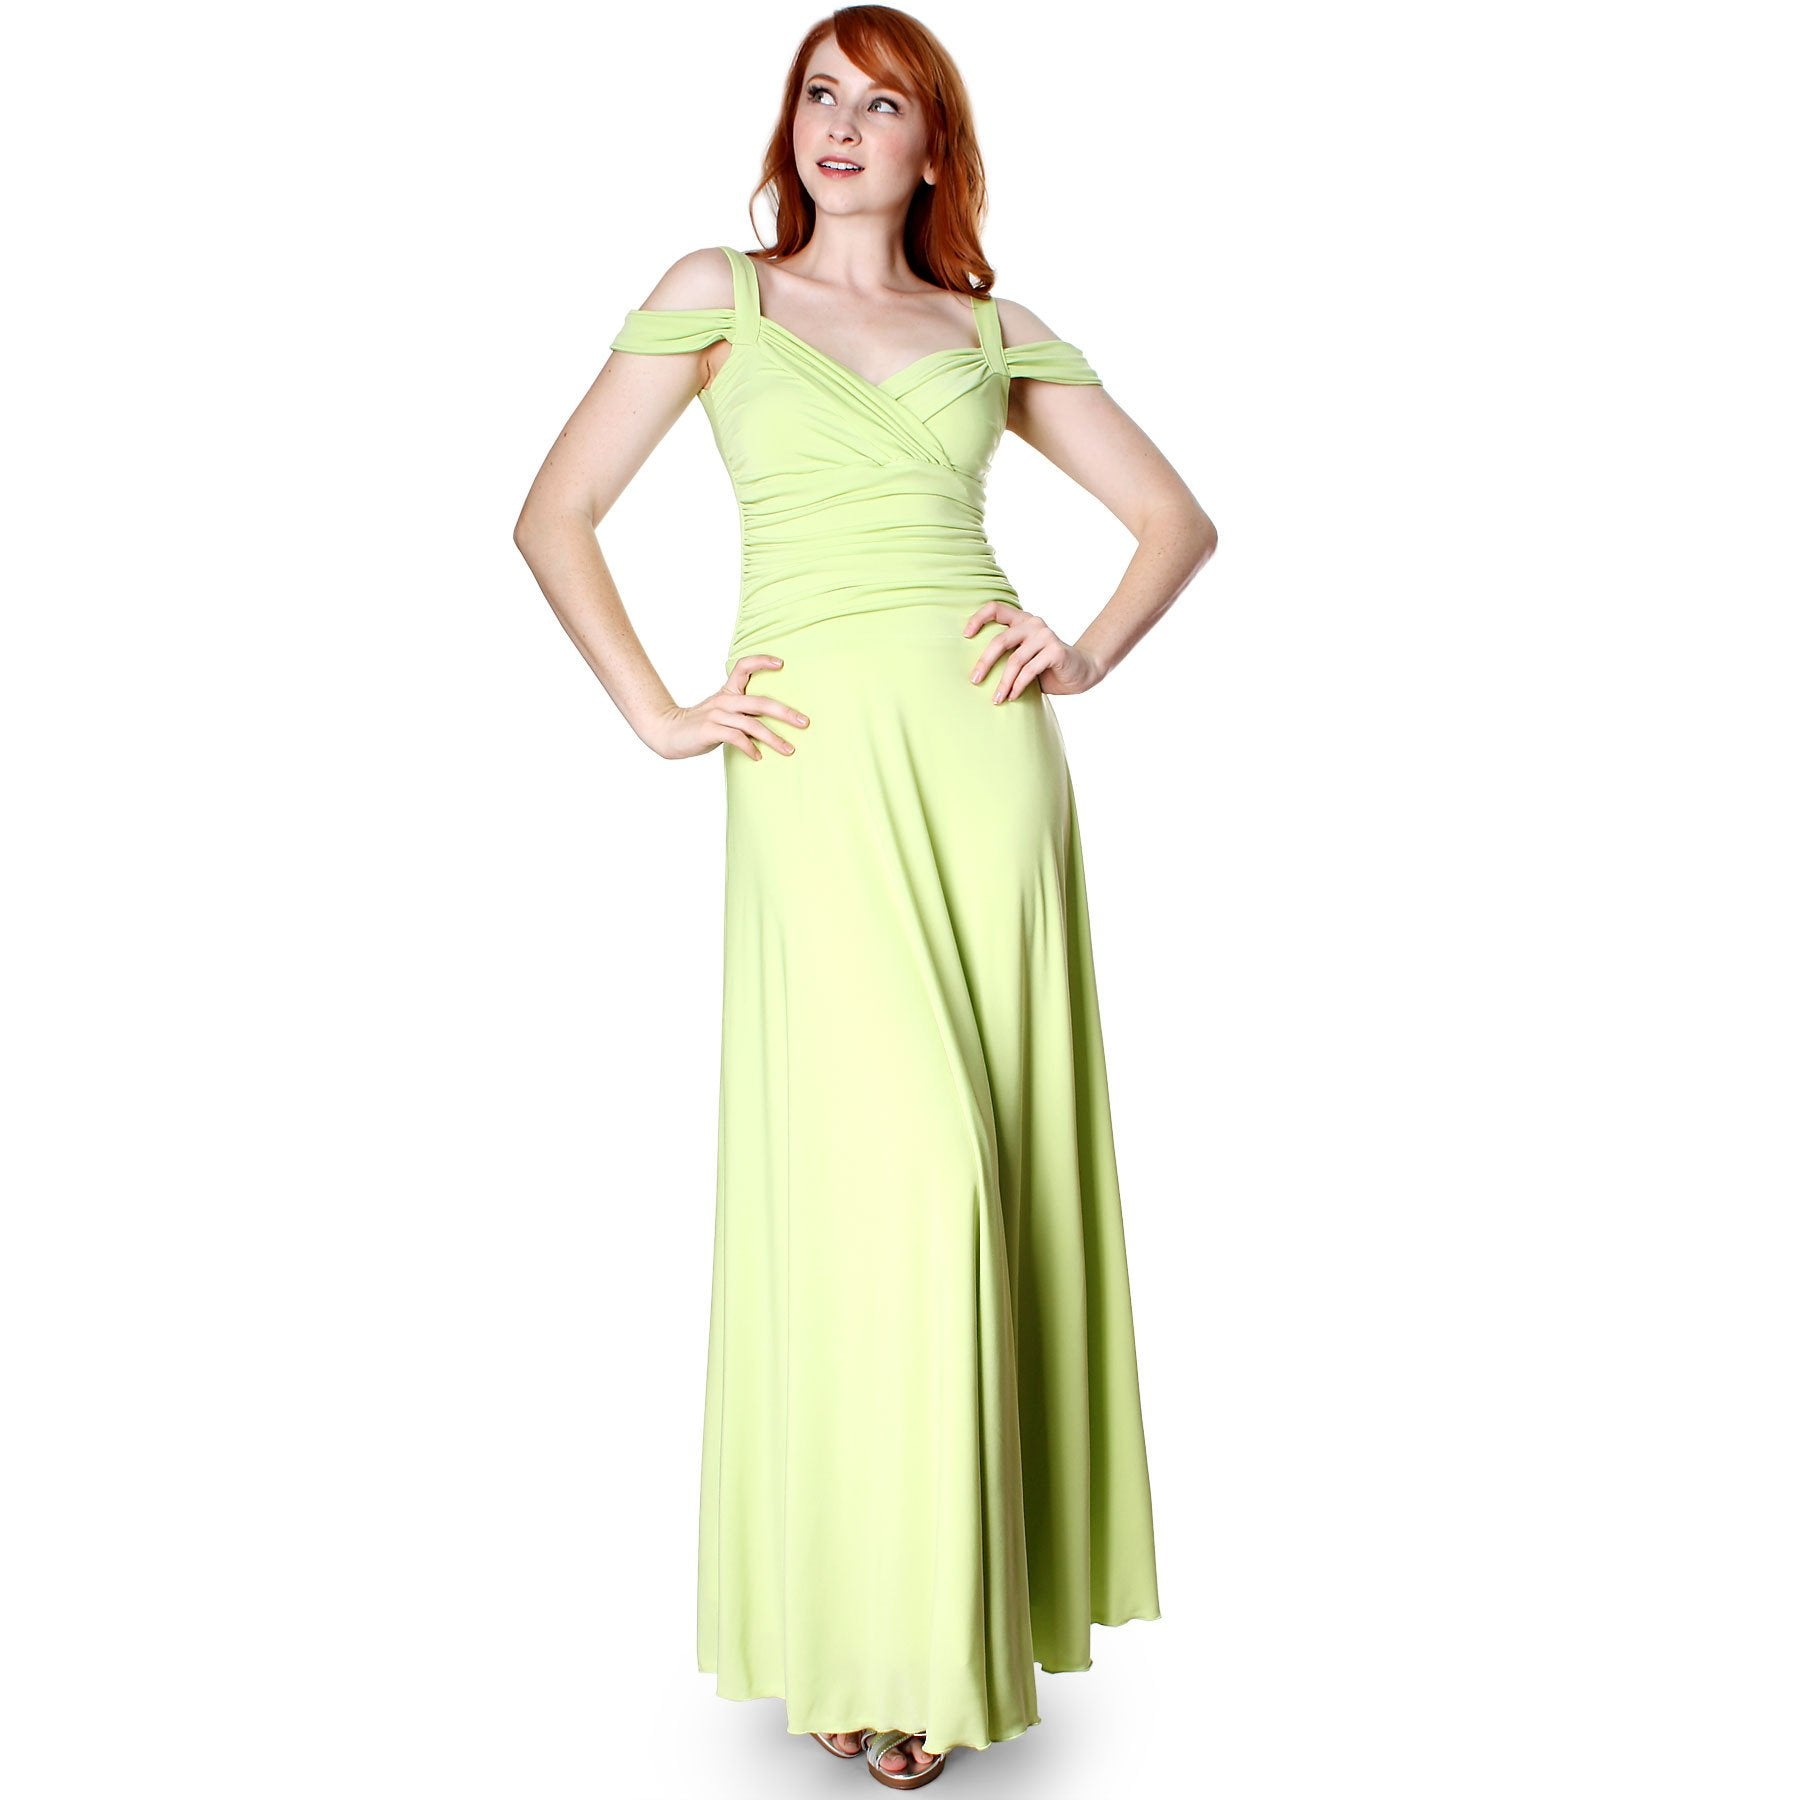 Women's Slip On Elegant Formal Long Evening Dress